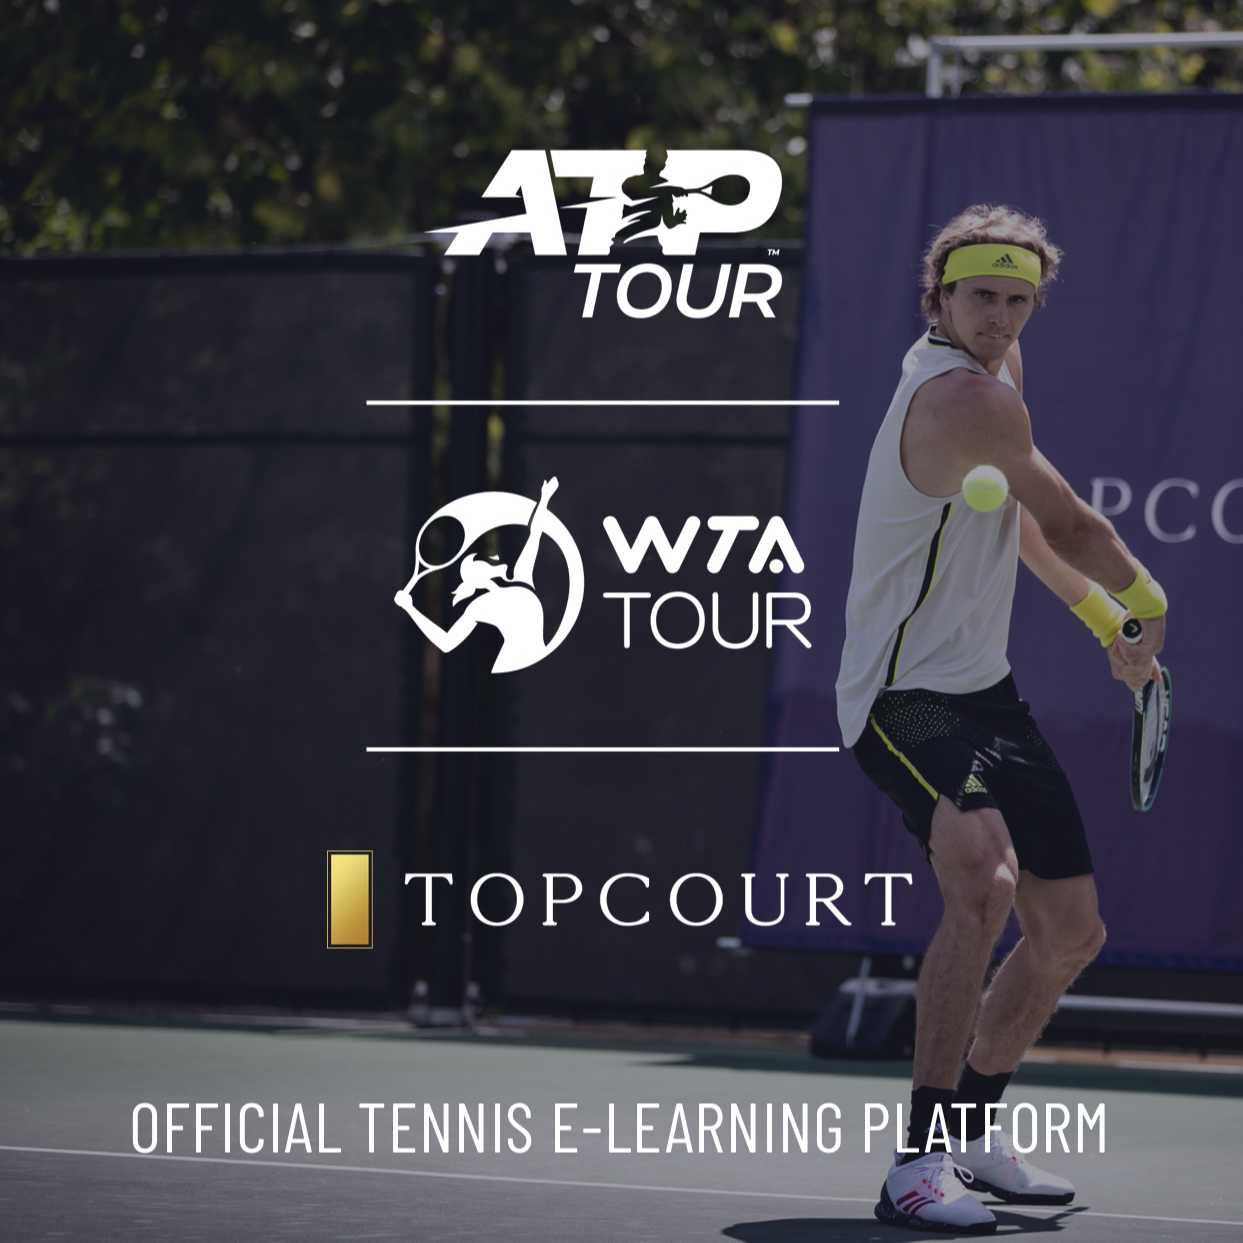 TopCourt Partners with the ATP and WTA Tours